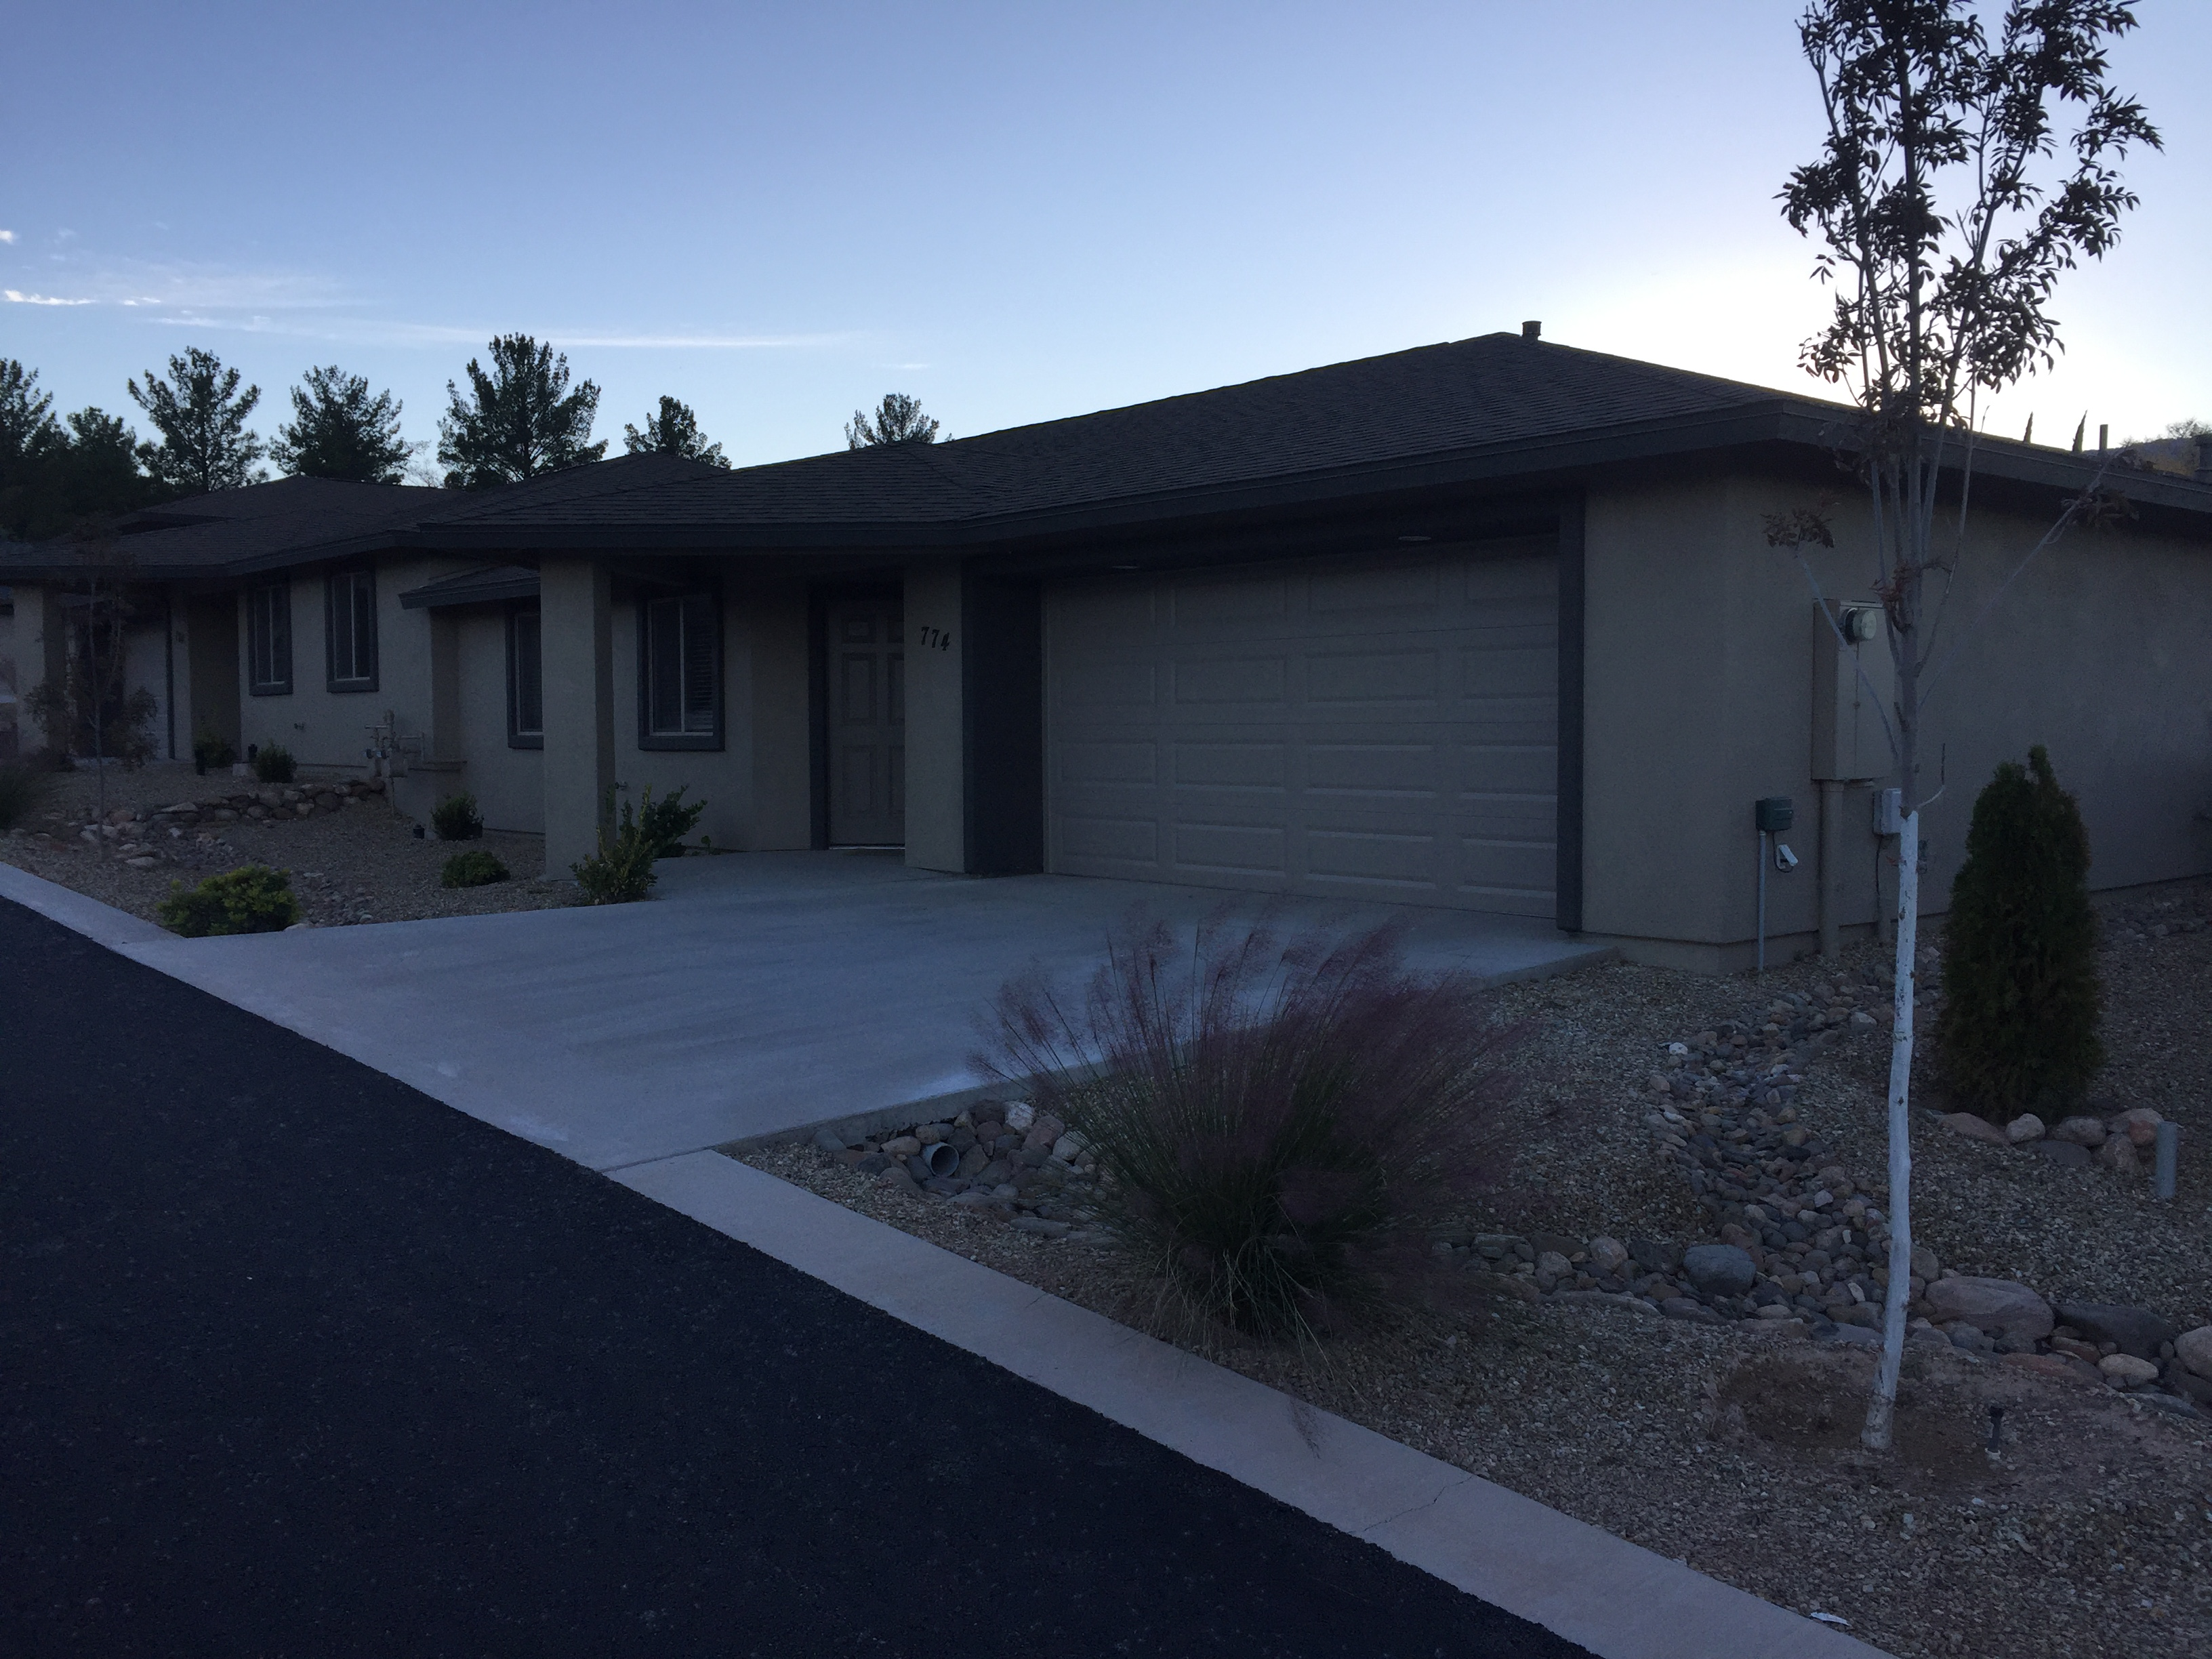 Prime Location: Beautiful, naturally well-lit 2-bedroom 2-bathroom apartment in central Cottonwood. Quiet neighborhood. Close to Safeway, Food City, Wells Fargo and Chase. 5 minutes from the hospital. Walking distance to nearby restaurants. Hardwood flooring throughout